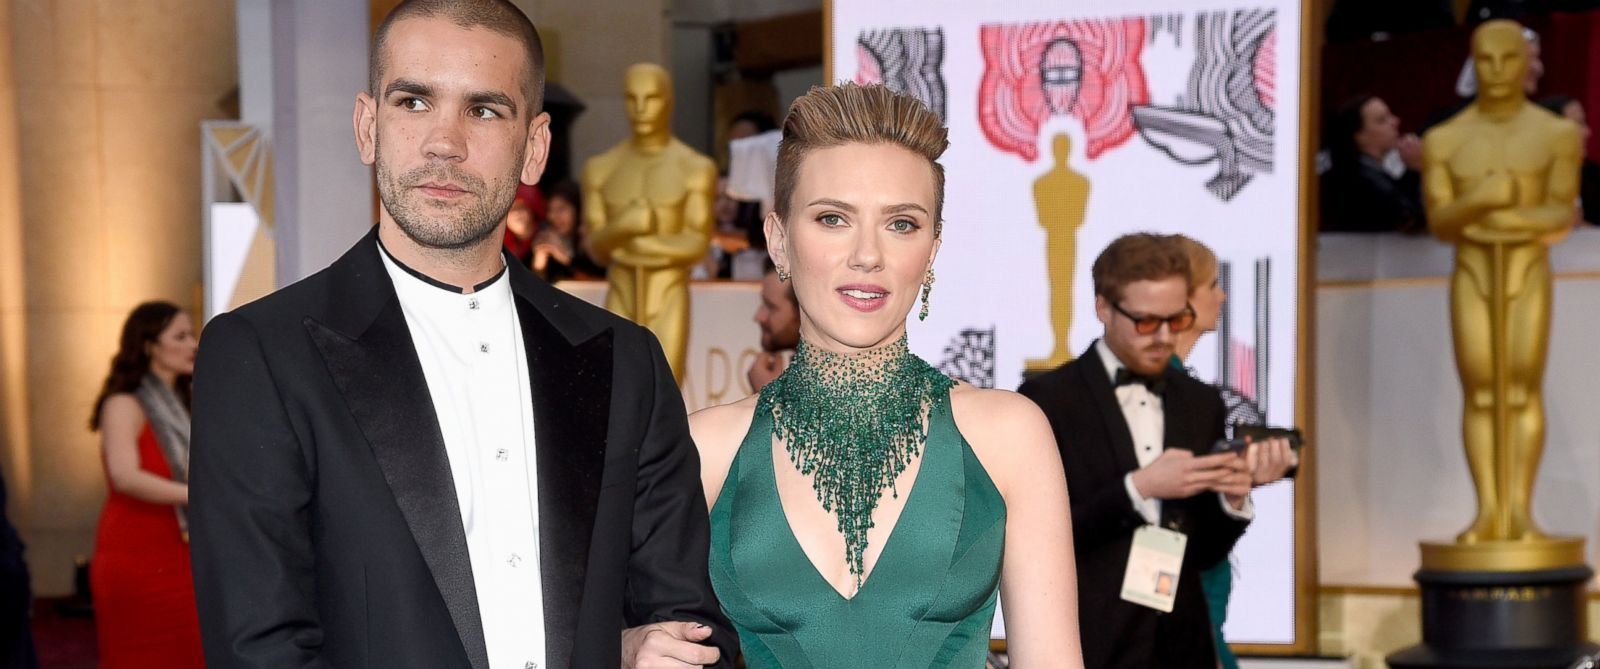 PHOTO: Actress Scarlett Johansson and Romain Dauriac attend the 87th Annual Academy Awards at Hollywood & Highland Center, on Feb. 22, 2015, in Hollywood, Calif.